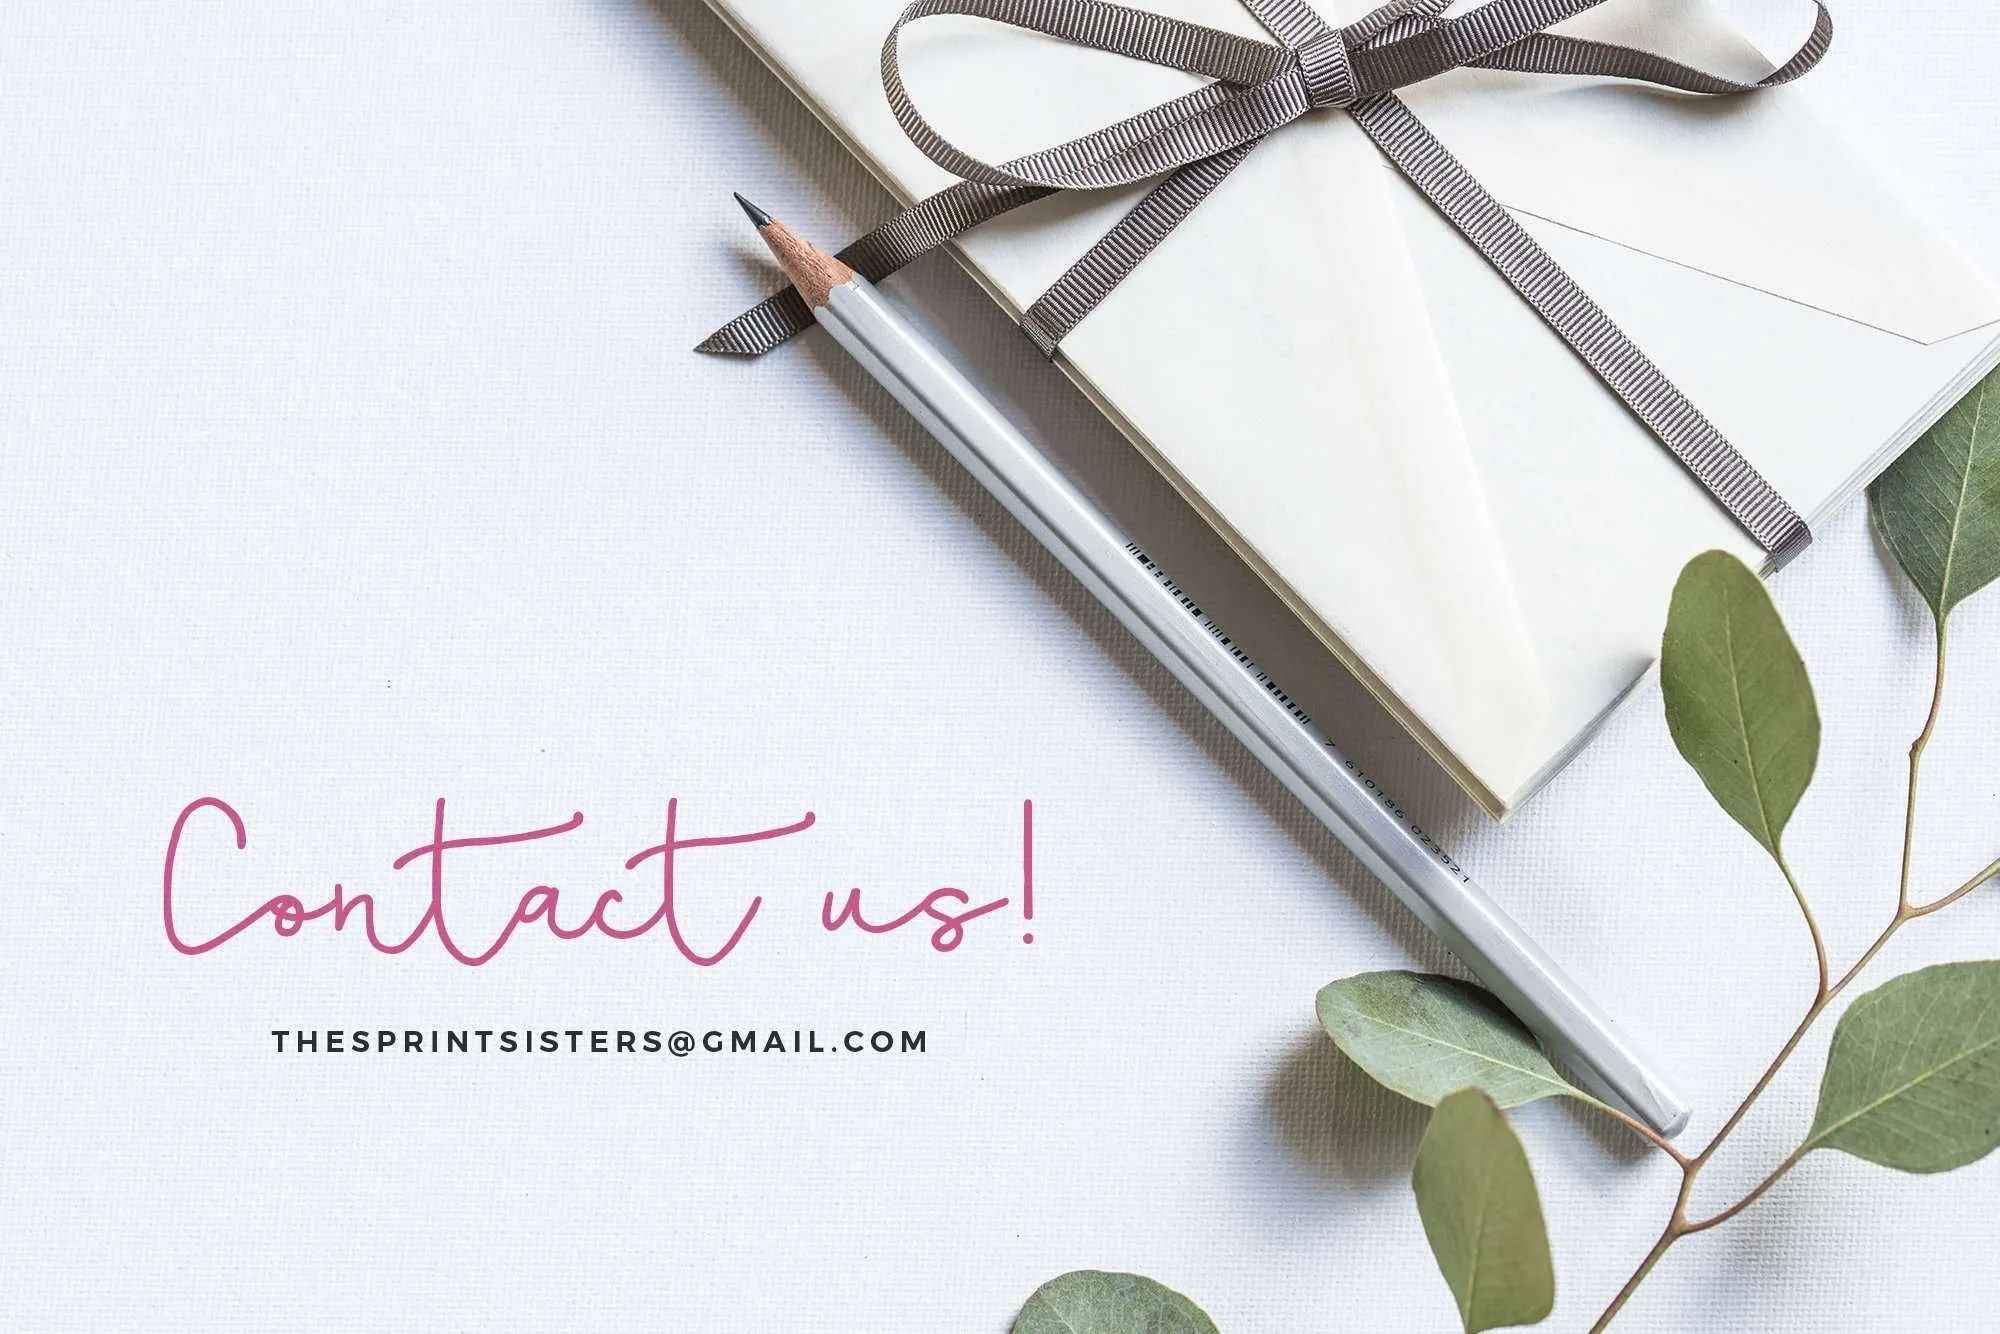 The Sprint Sisters - Contact us!